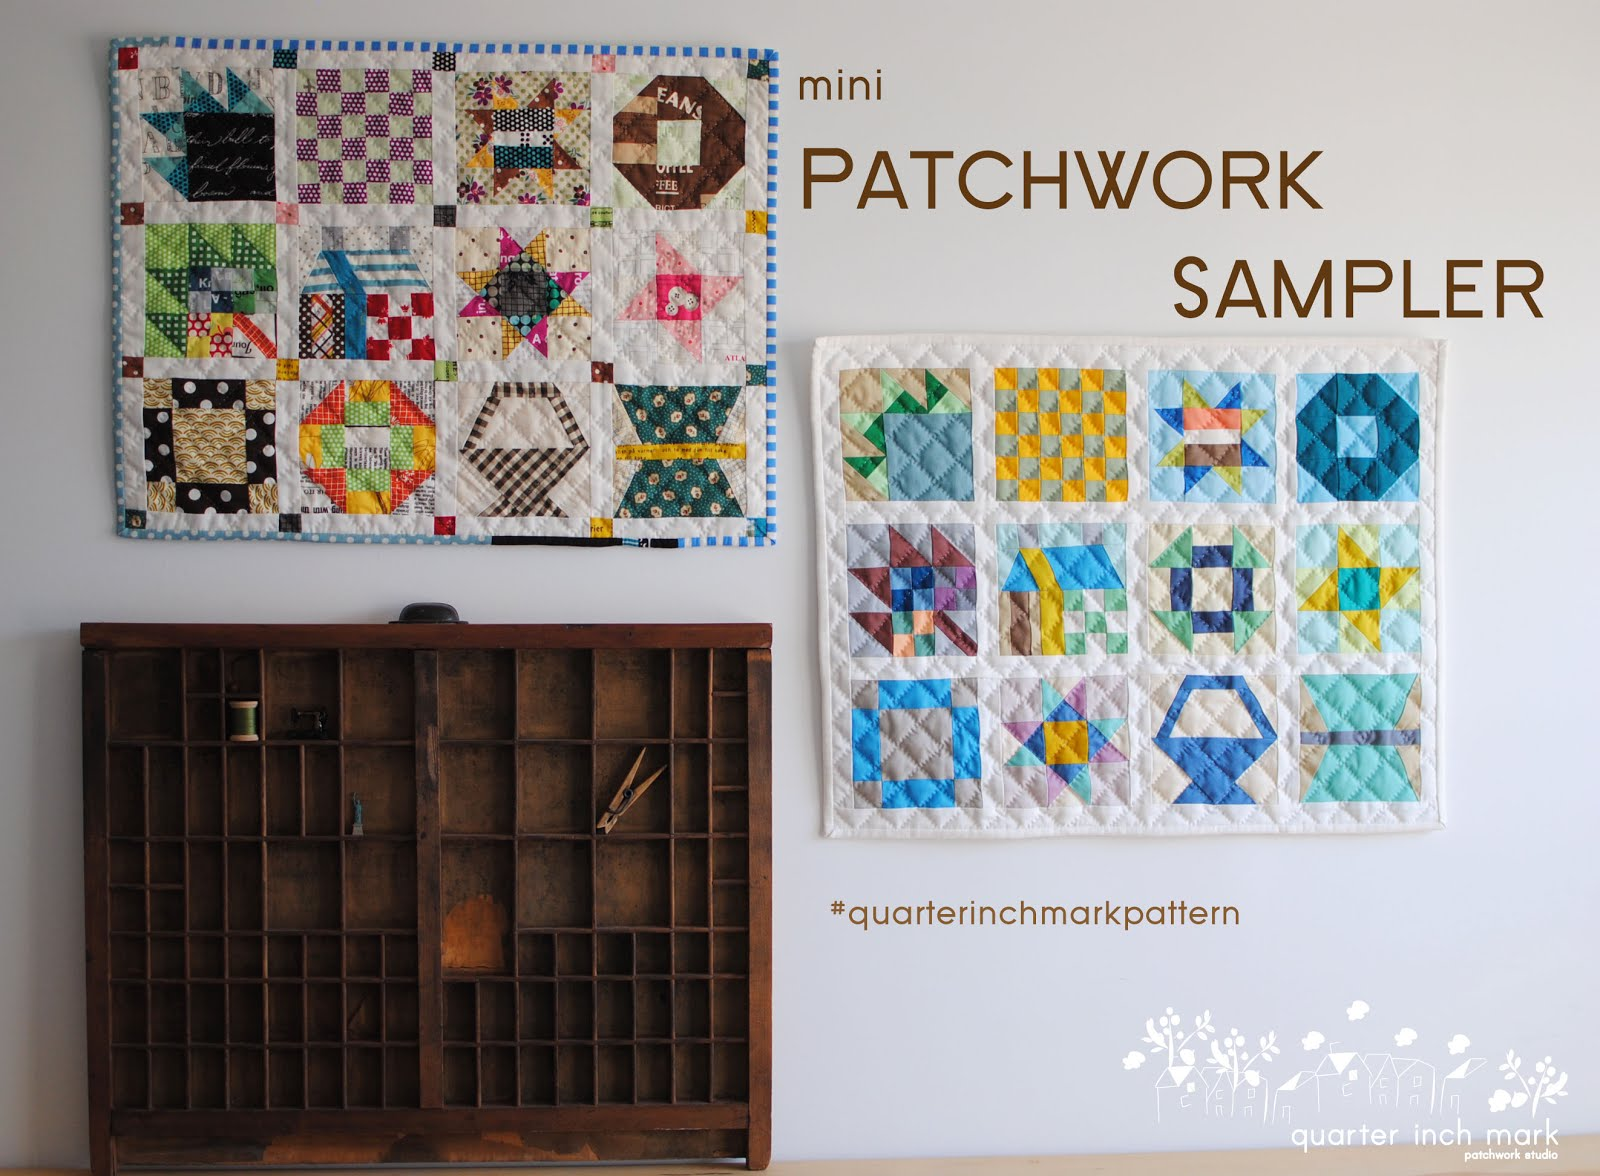 mini Patchwork Sampler Sewing Pattern